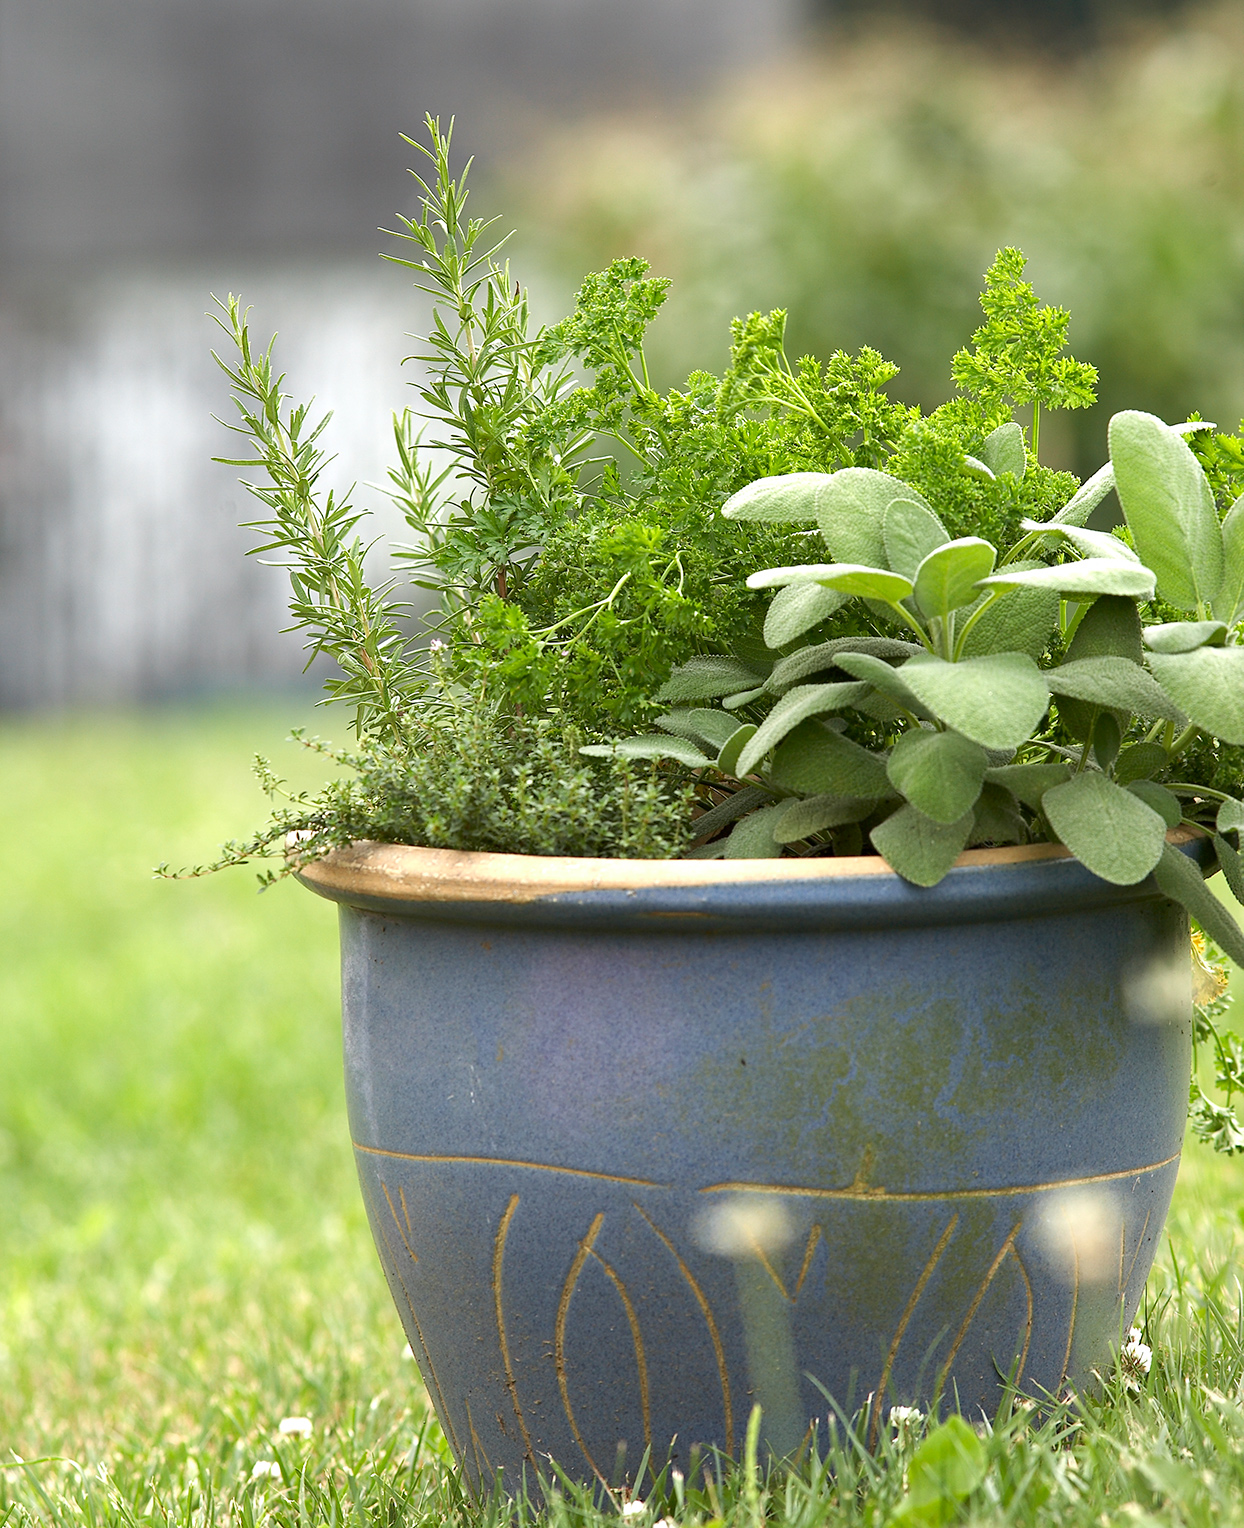 herbs growing in planter including sage and rosemary